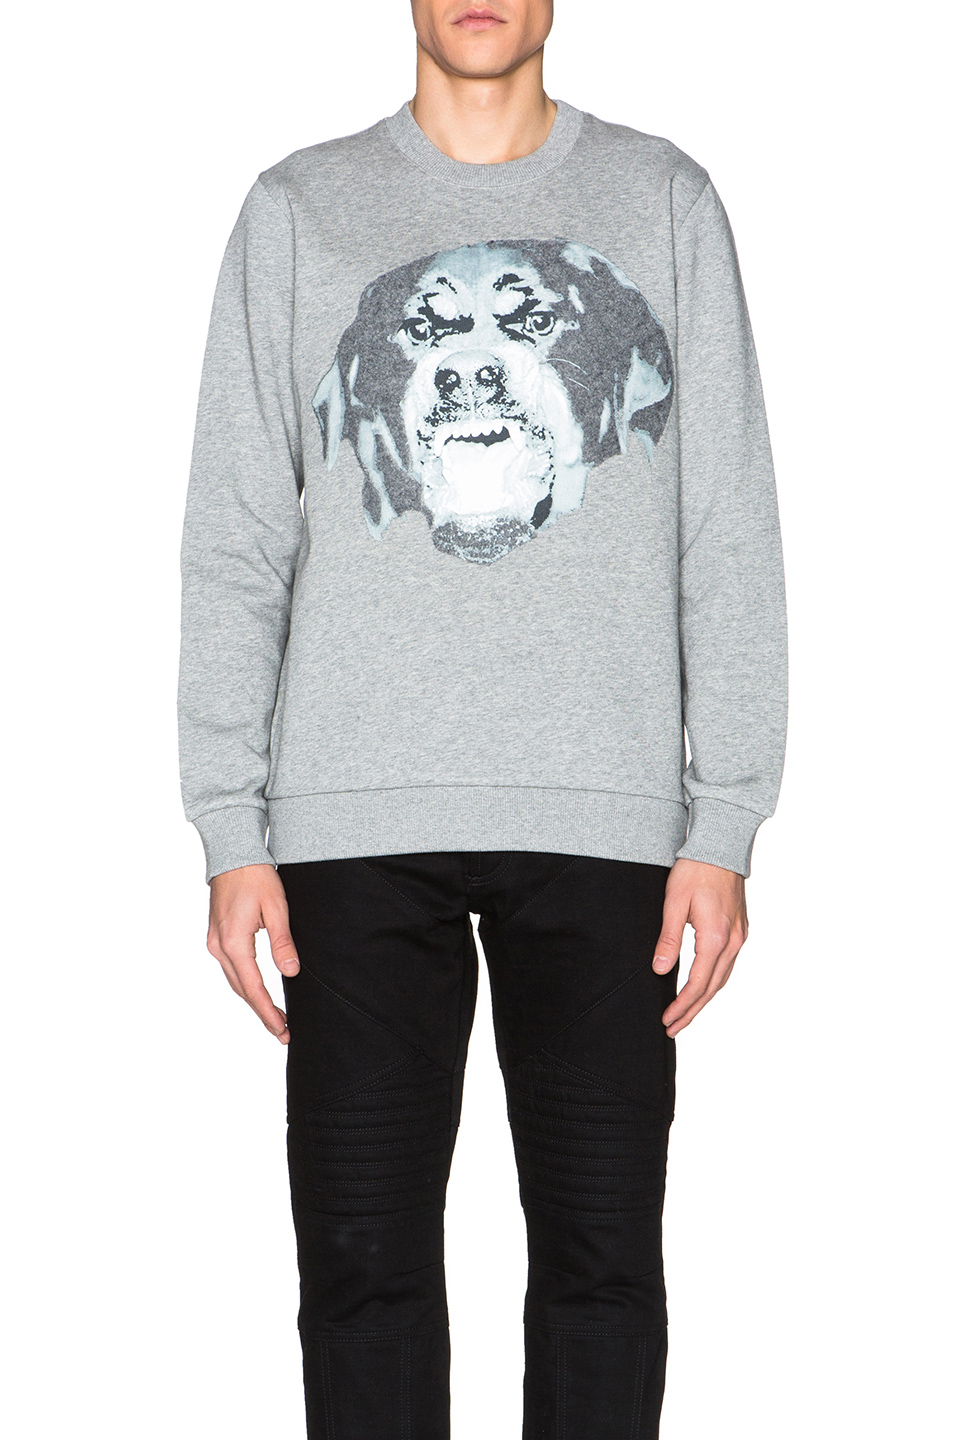 Givenchy Cuban Fit Rottweiler Sweatshirt in Gray